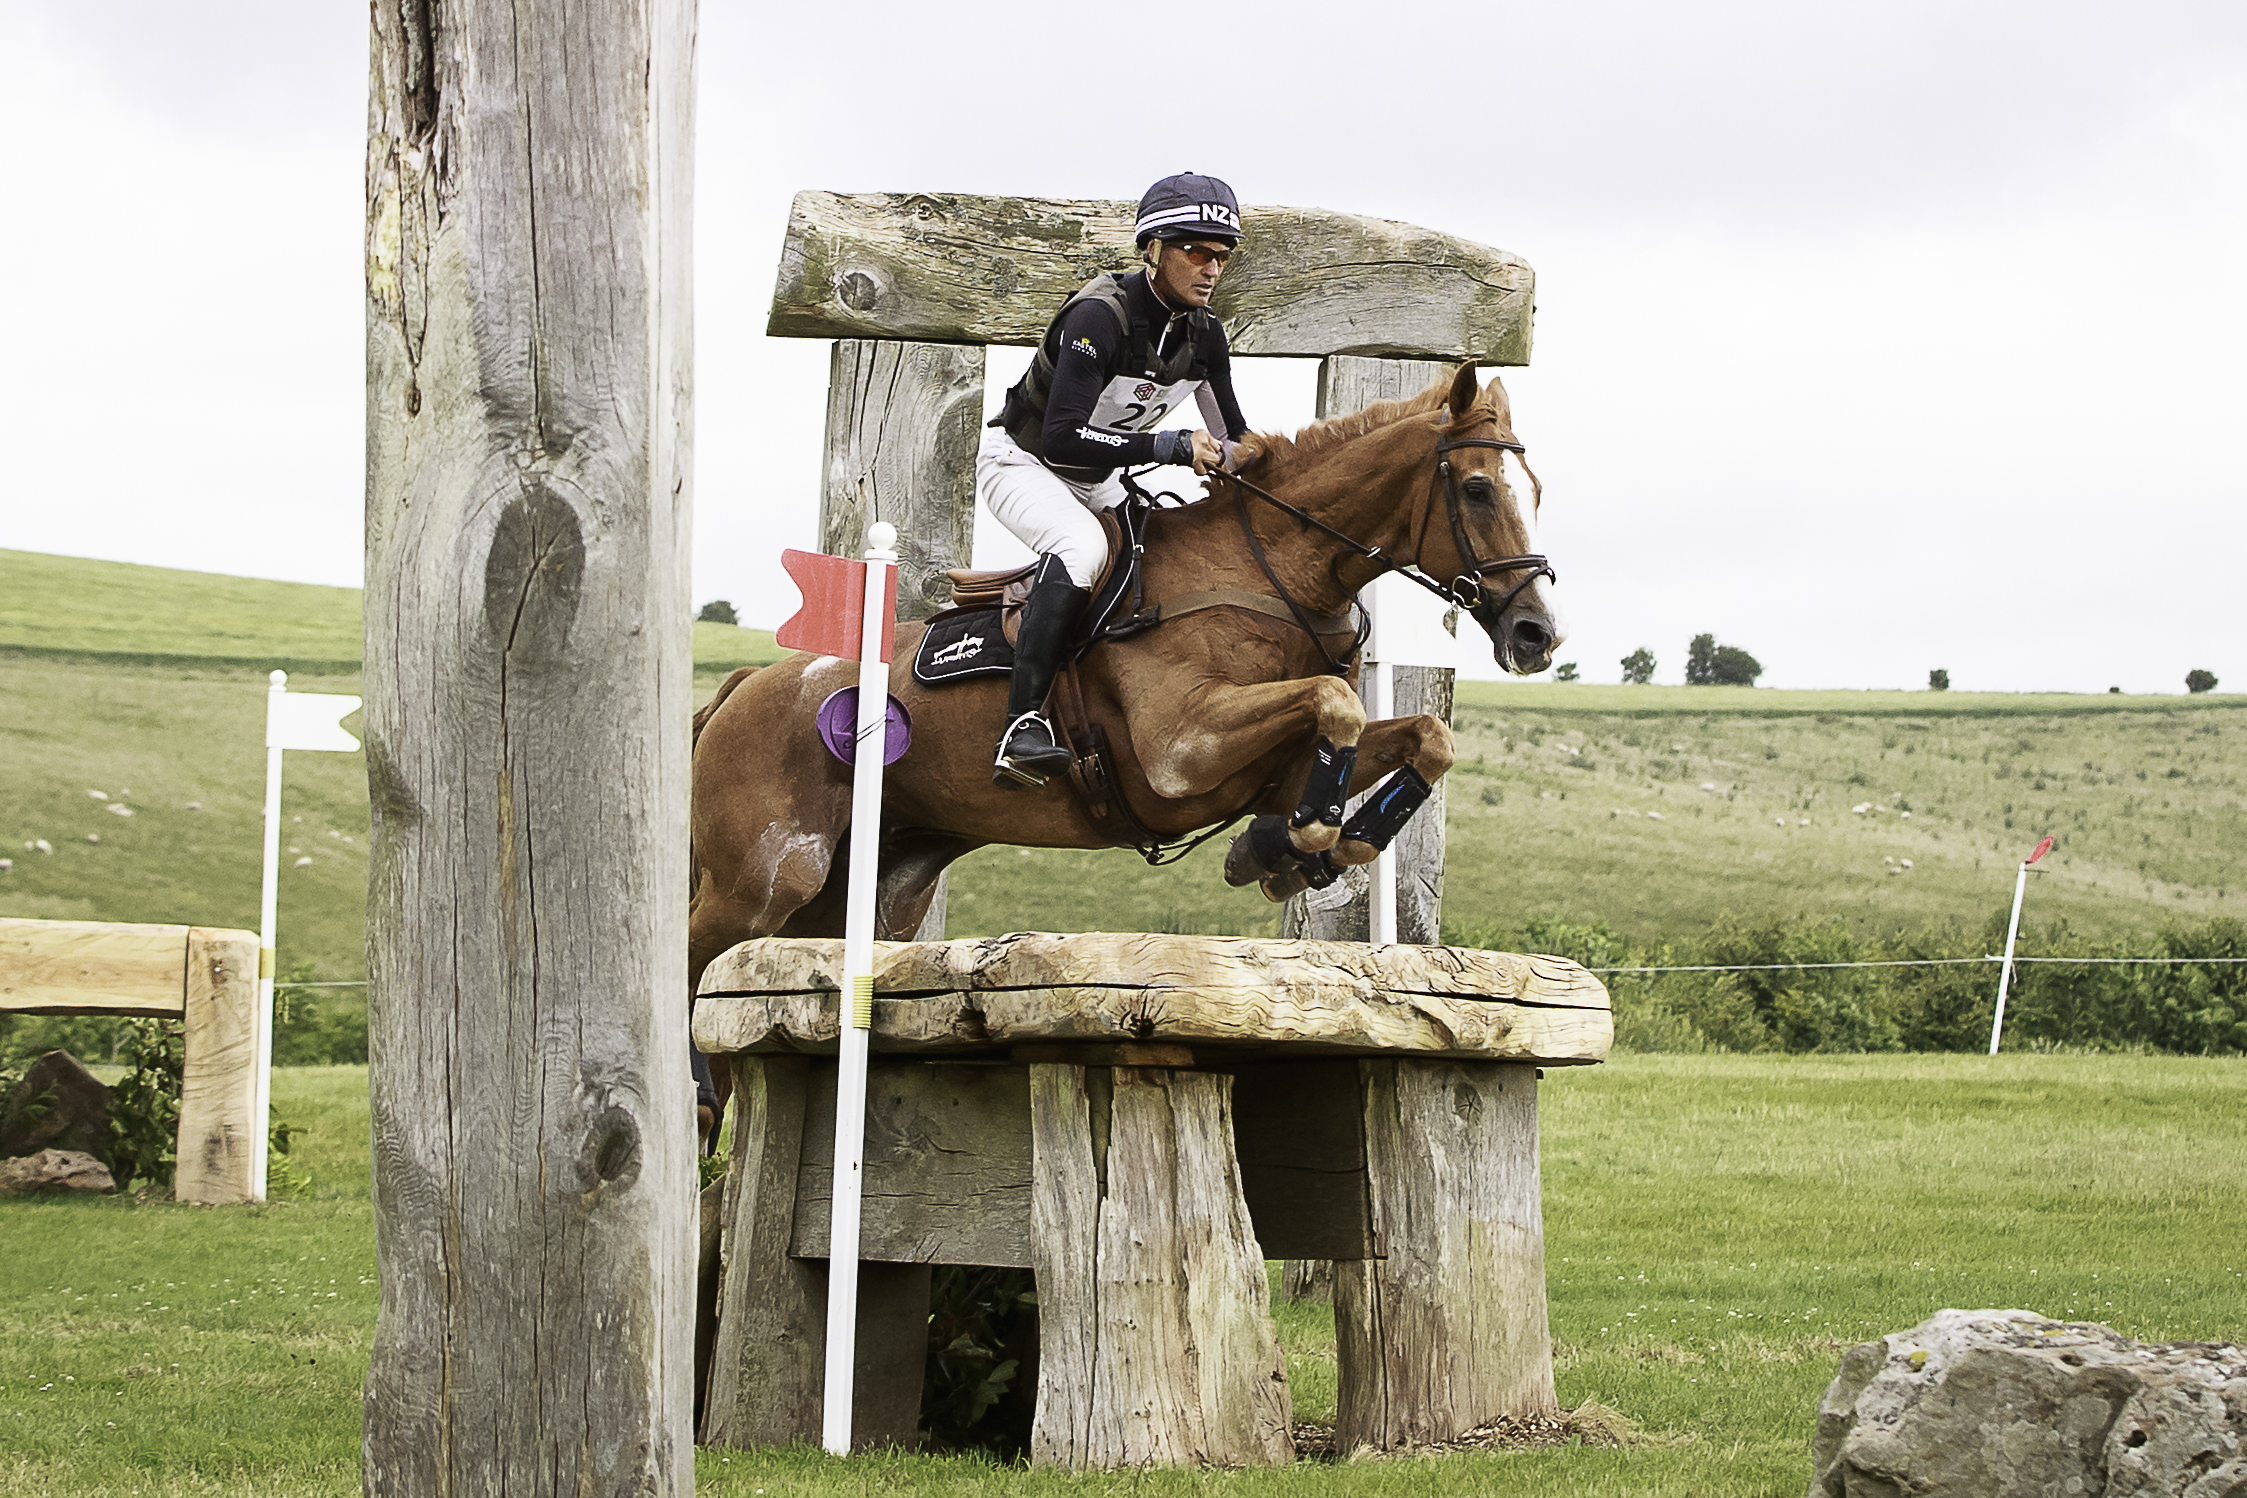 Andrew Nicholson riding Nereo enroute to victory in leg four of the Event Rider Masters at the Barbury International Horse Trials © Libby Law Photography & Eventridermasters.tv